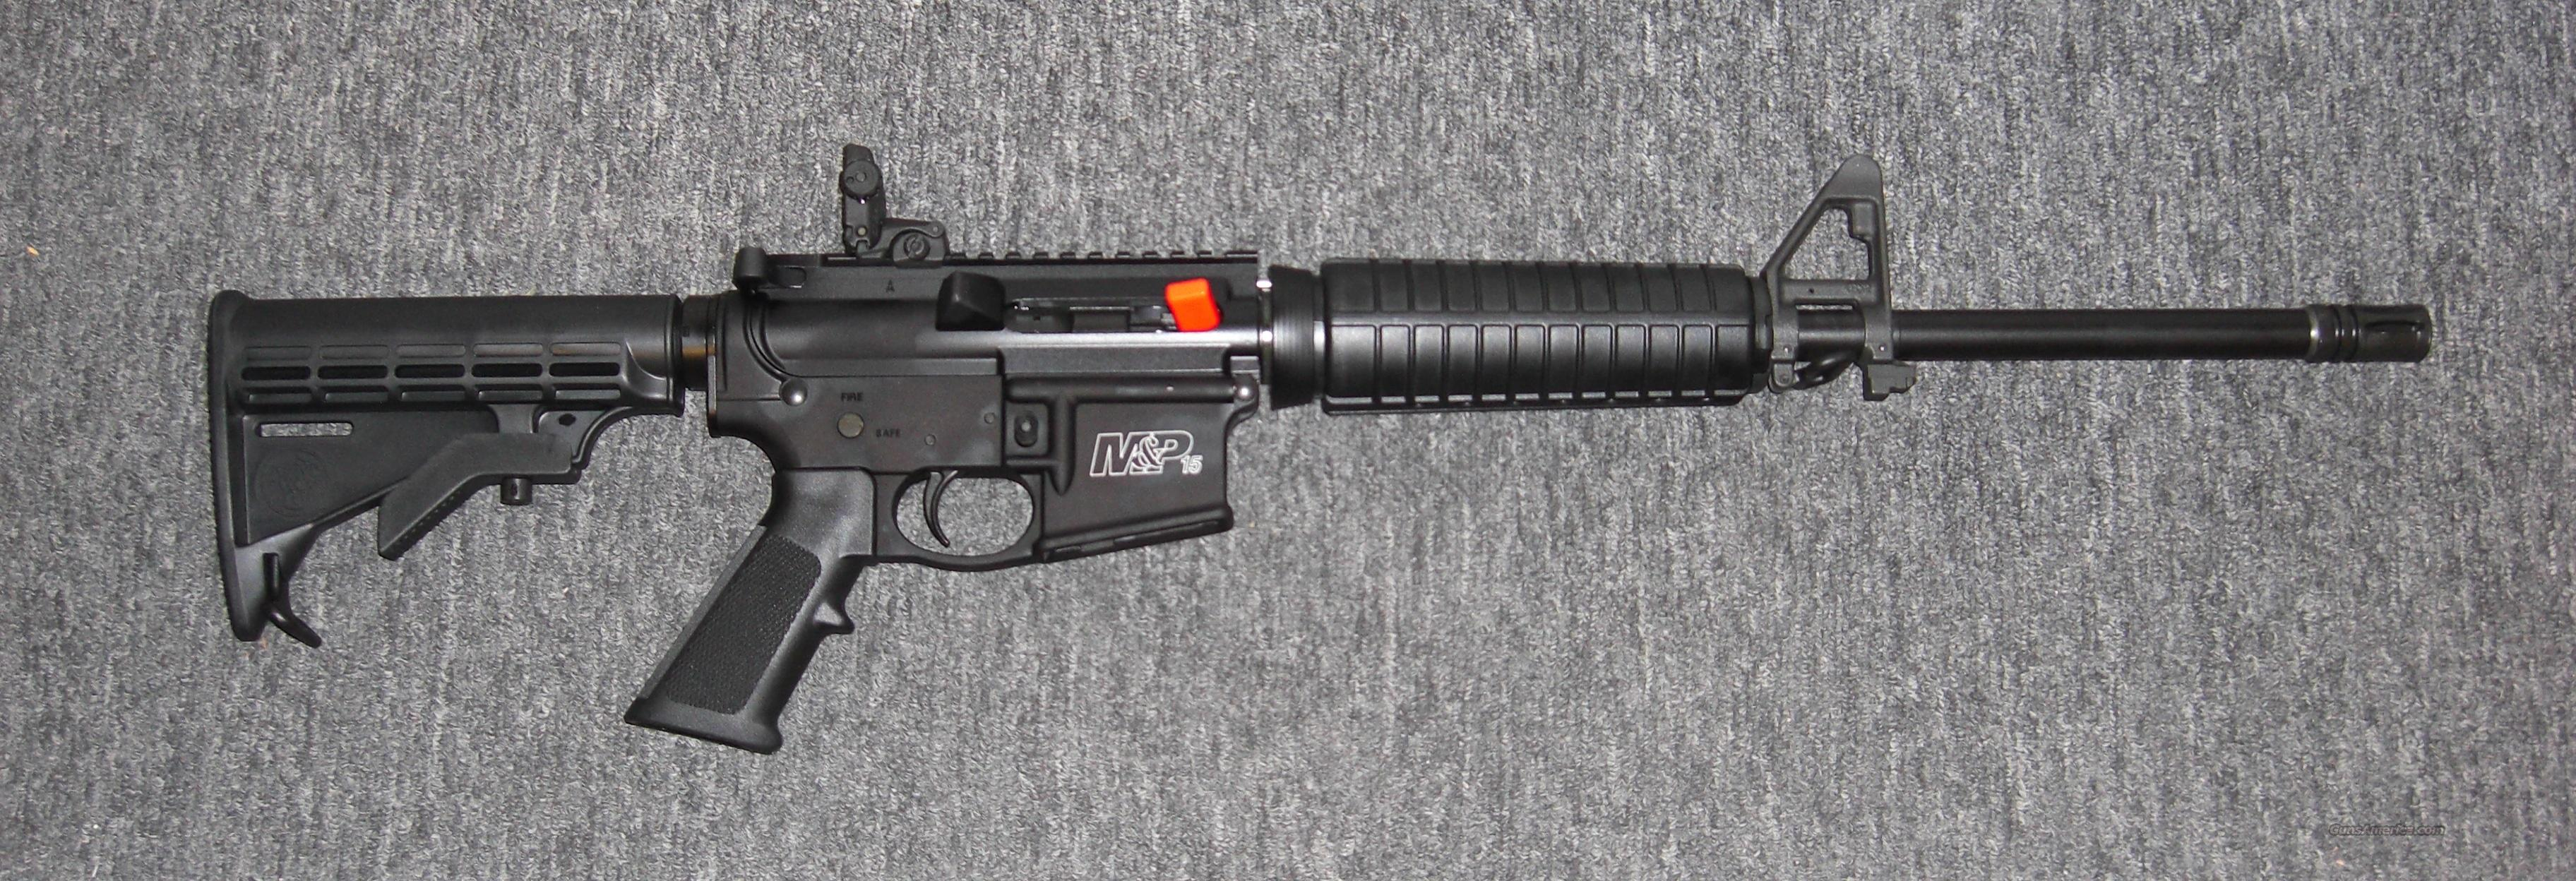 M&P 15 Sport  Guns > Rifles > Smith & Wesson Rifles > M&P